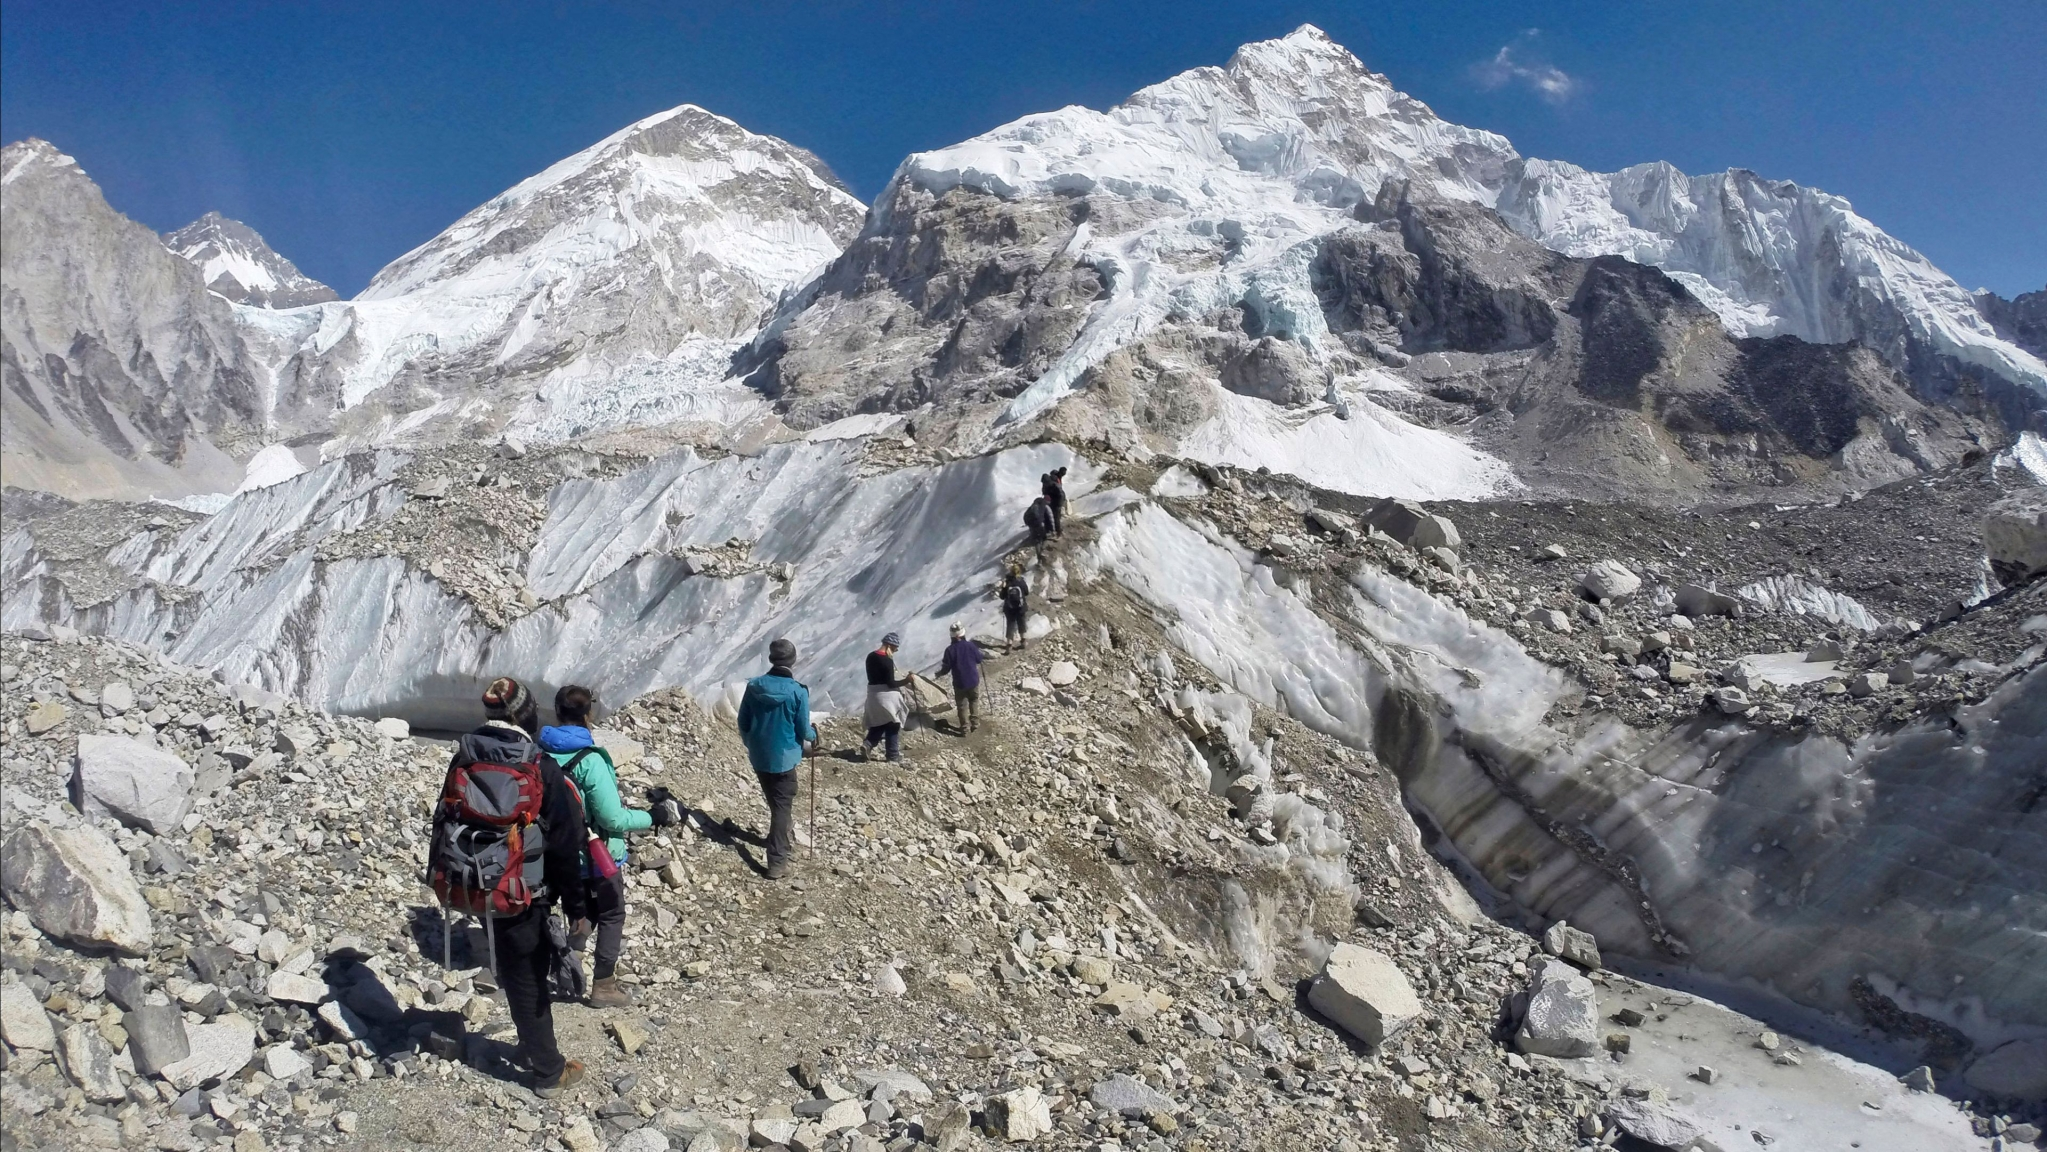 Bodies of Two Indian Mountaineers Recovered From Mt Kanchenjunga